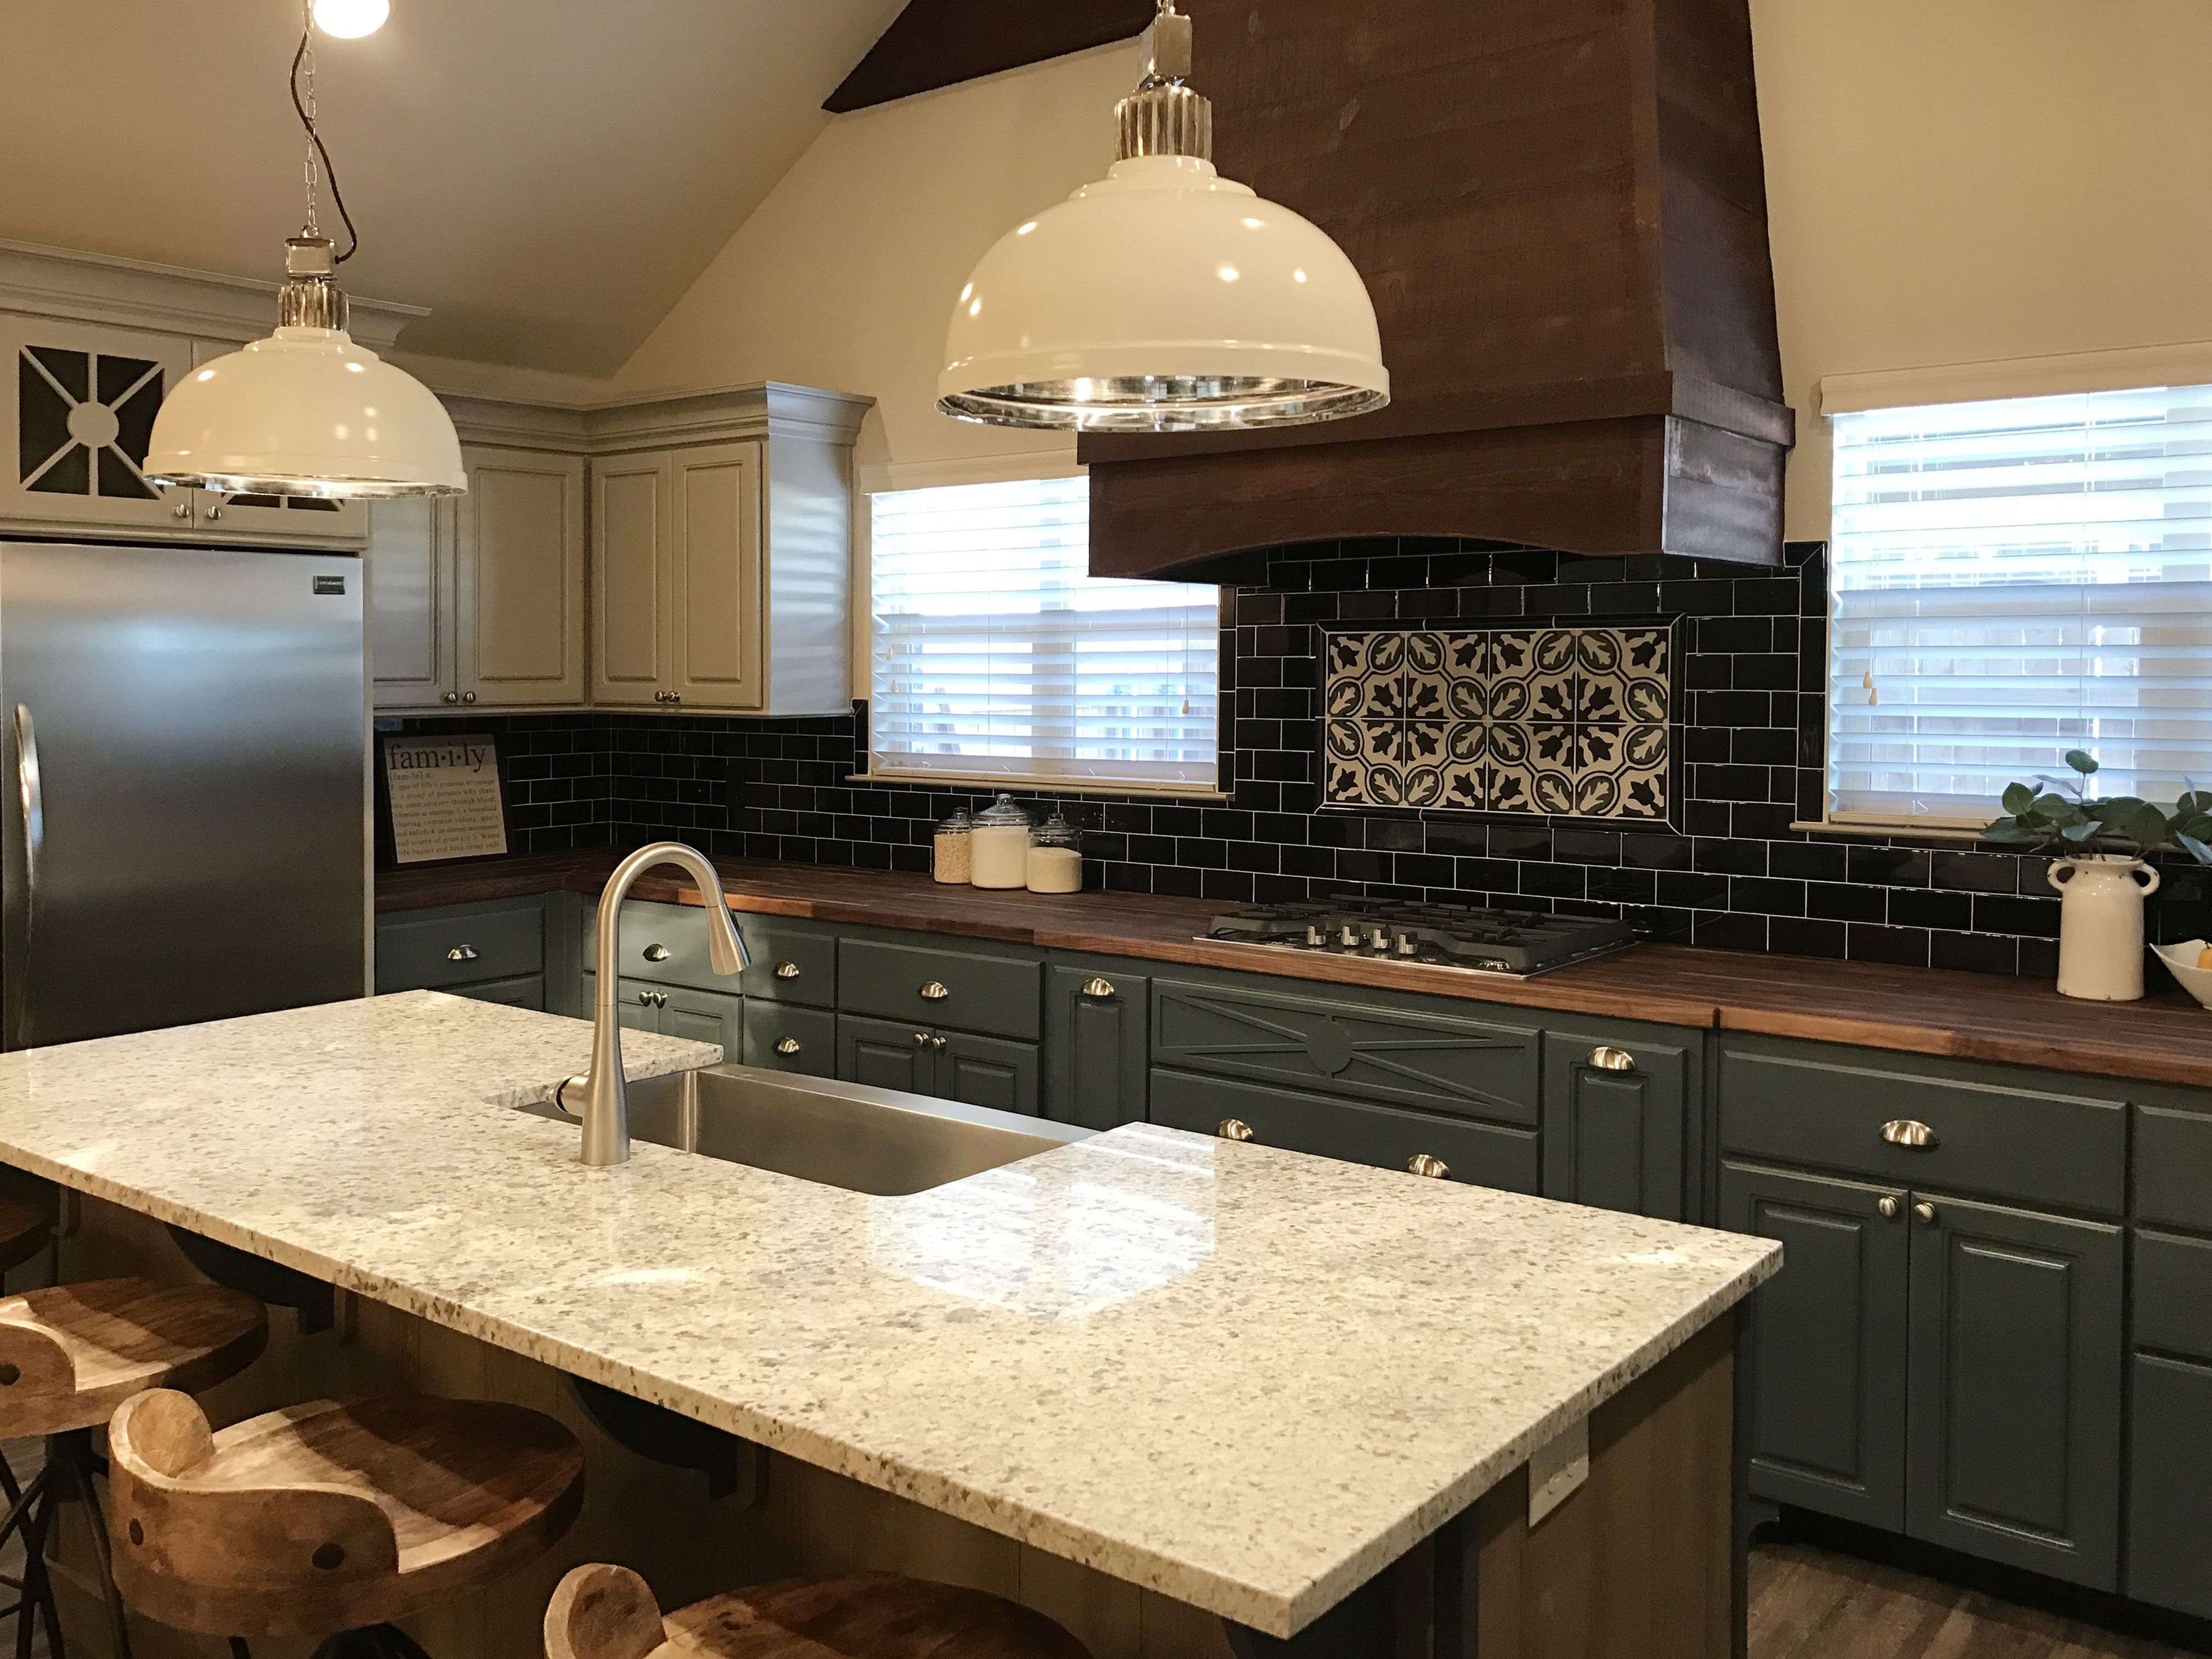 Kitchen By Ventura Homes In Lubbock, Texas / Industrial Kitchen / Rustic /  Blue Painted